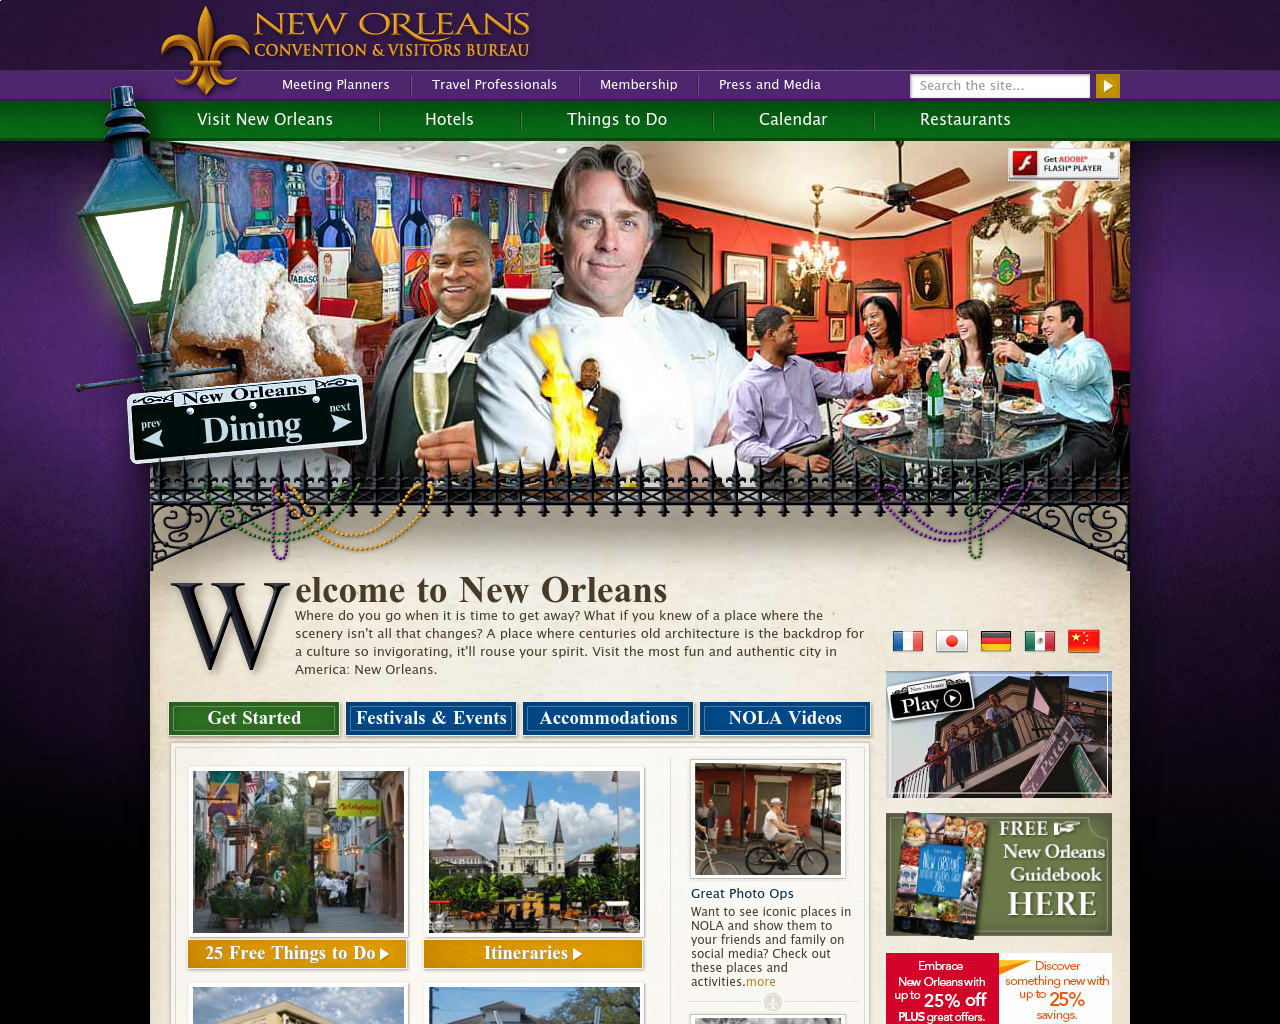 NEW-ORLEANS-Convention-&-Visitors-Bureau-Advertising-Reviews-Pricing